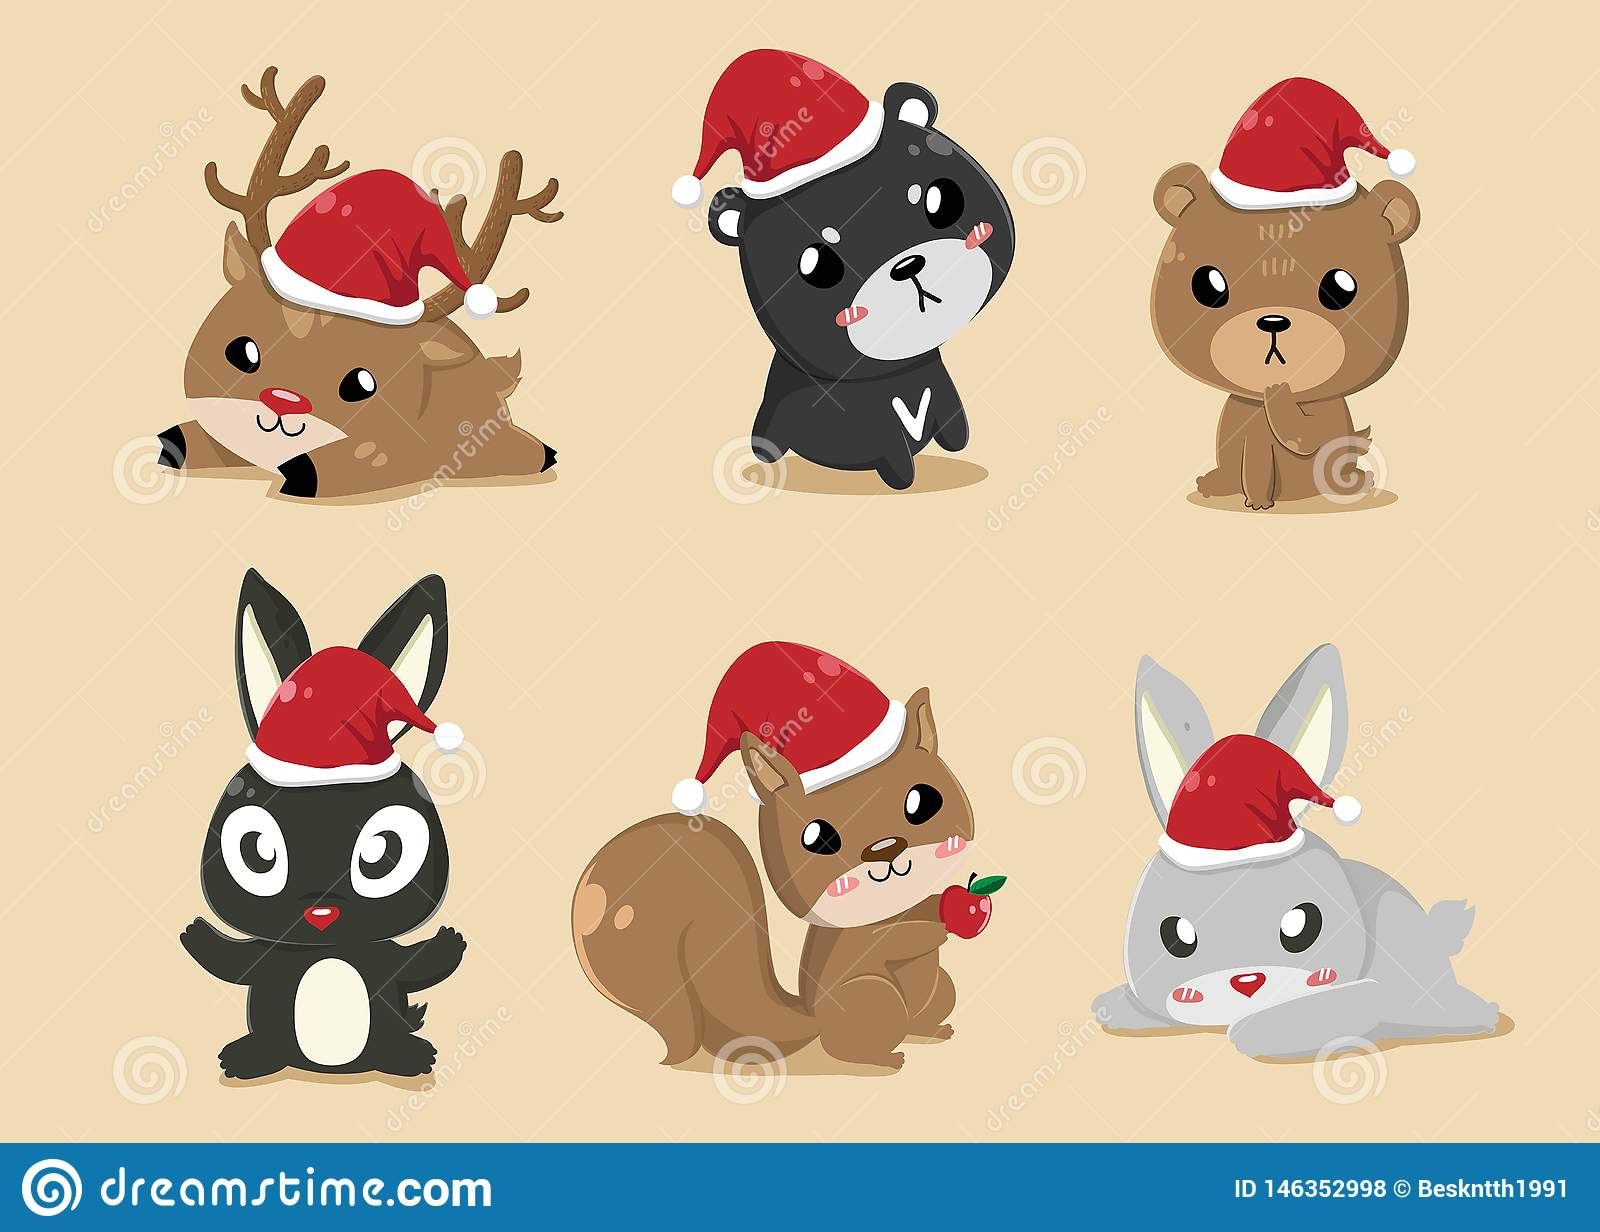 Animals in Christmas Day